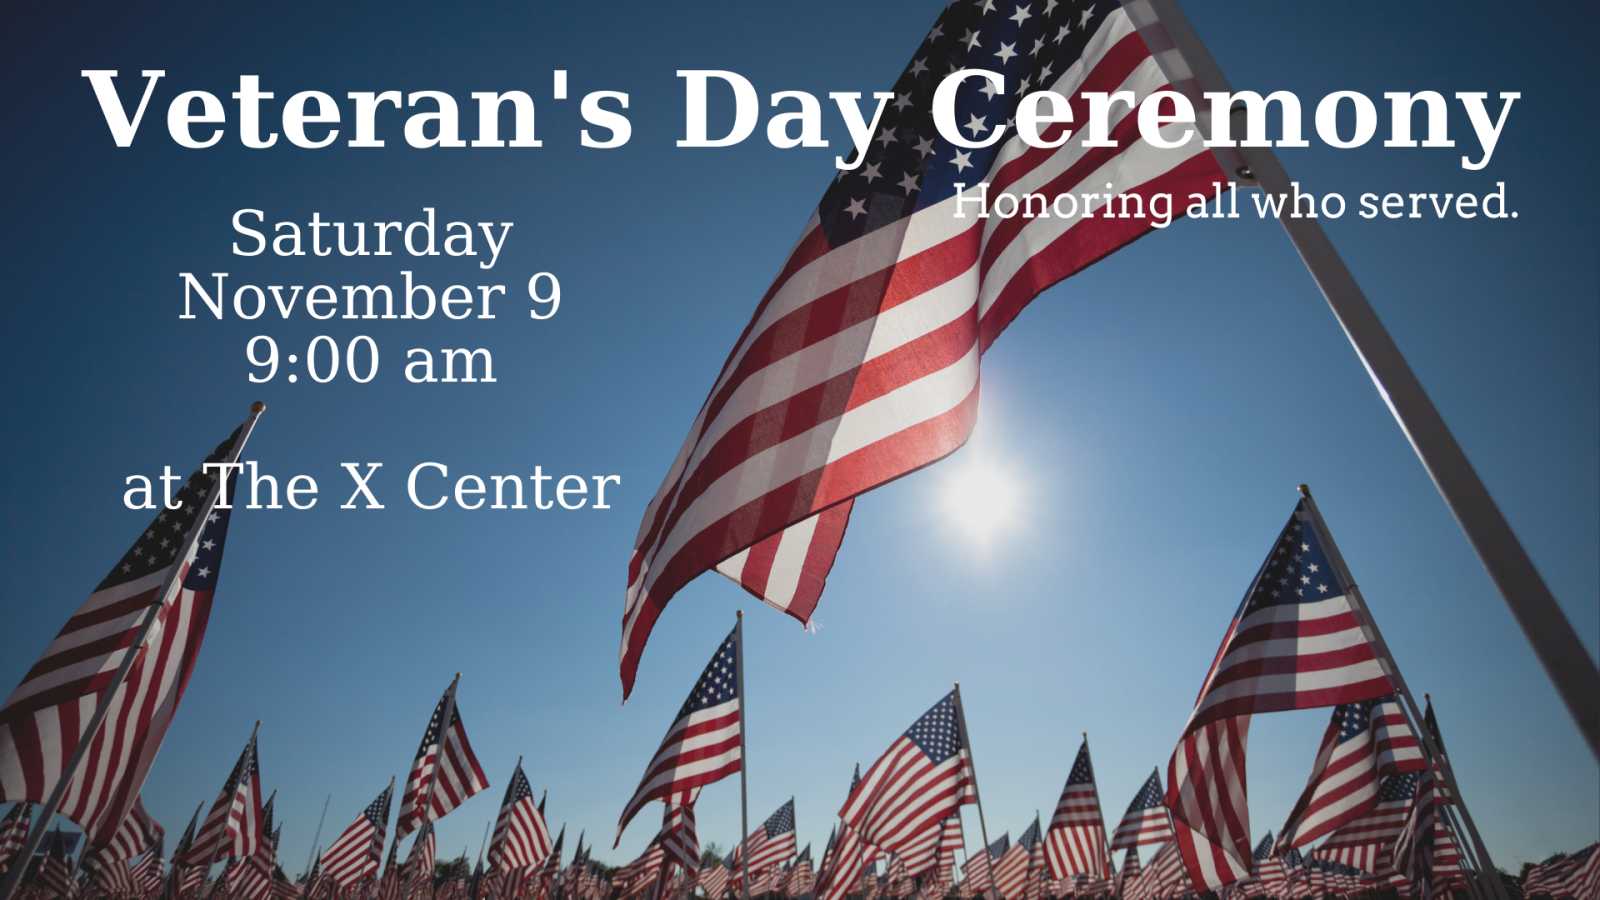 2019 Veteran's Day Ceremony 16x9